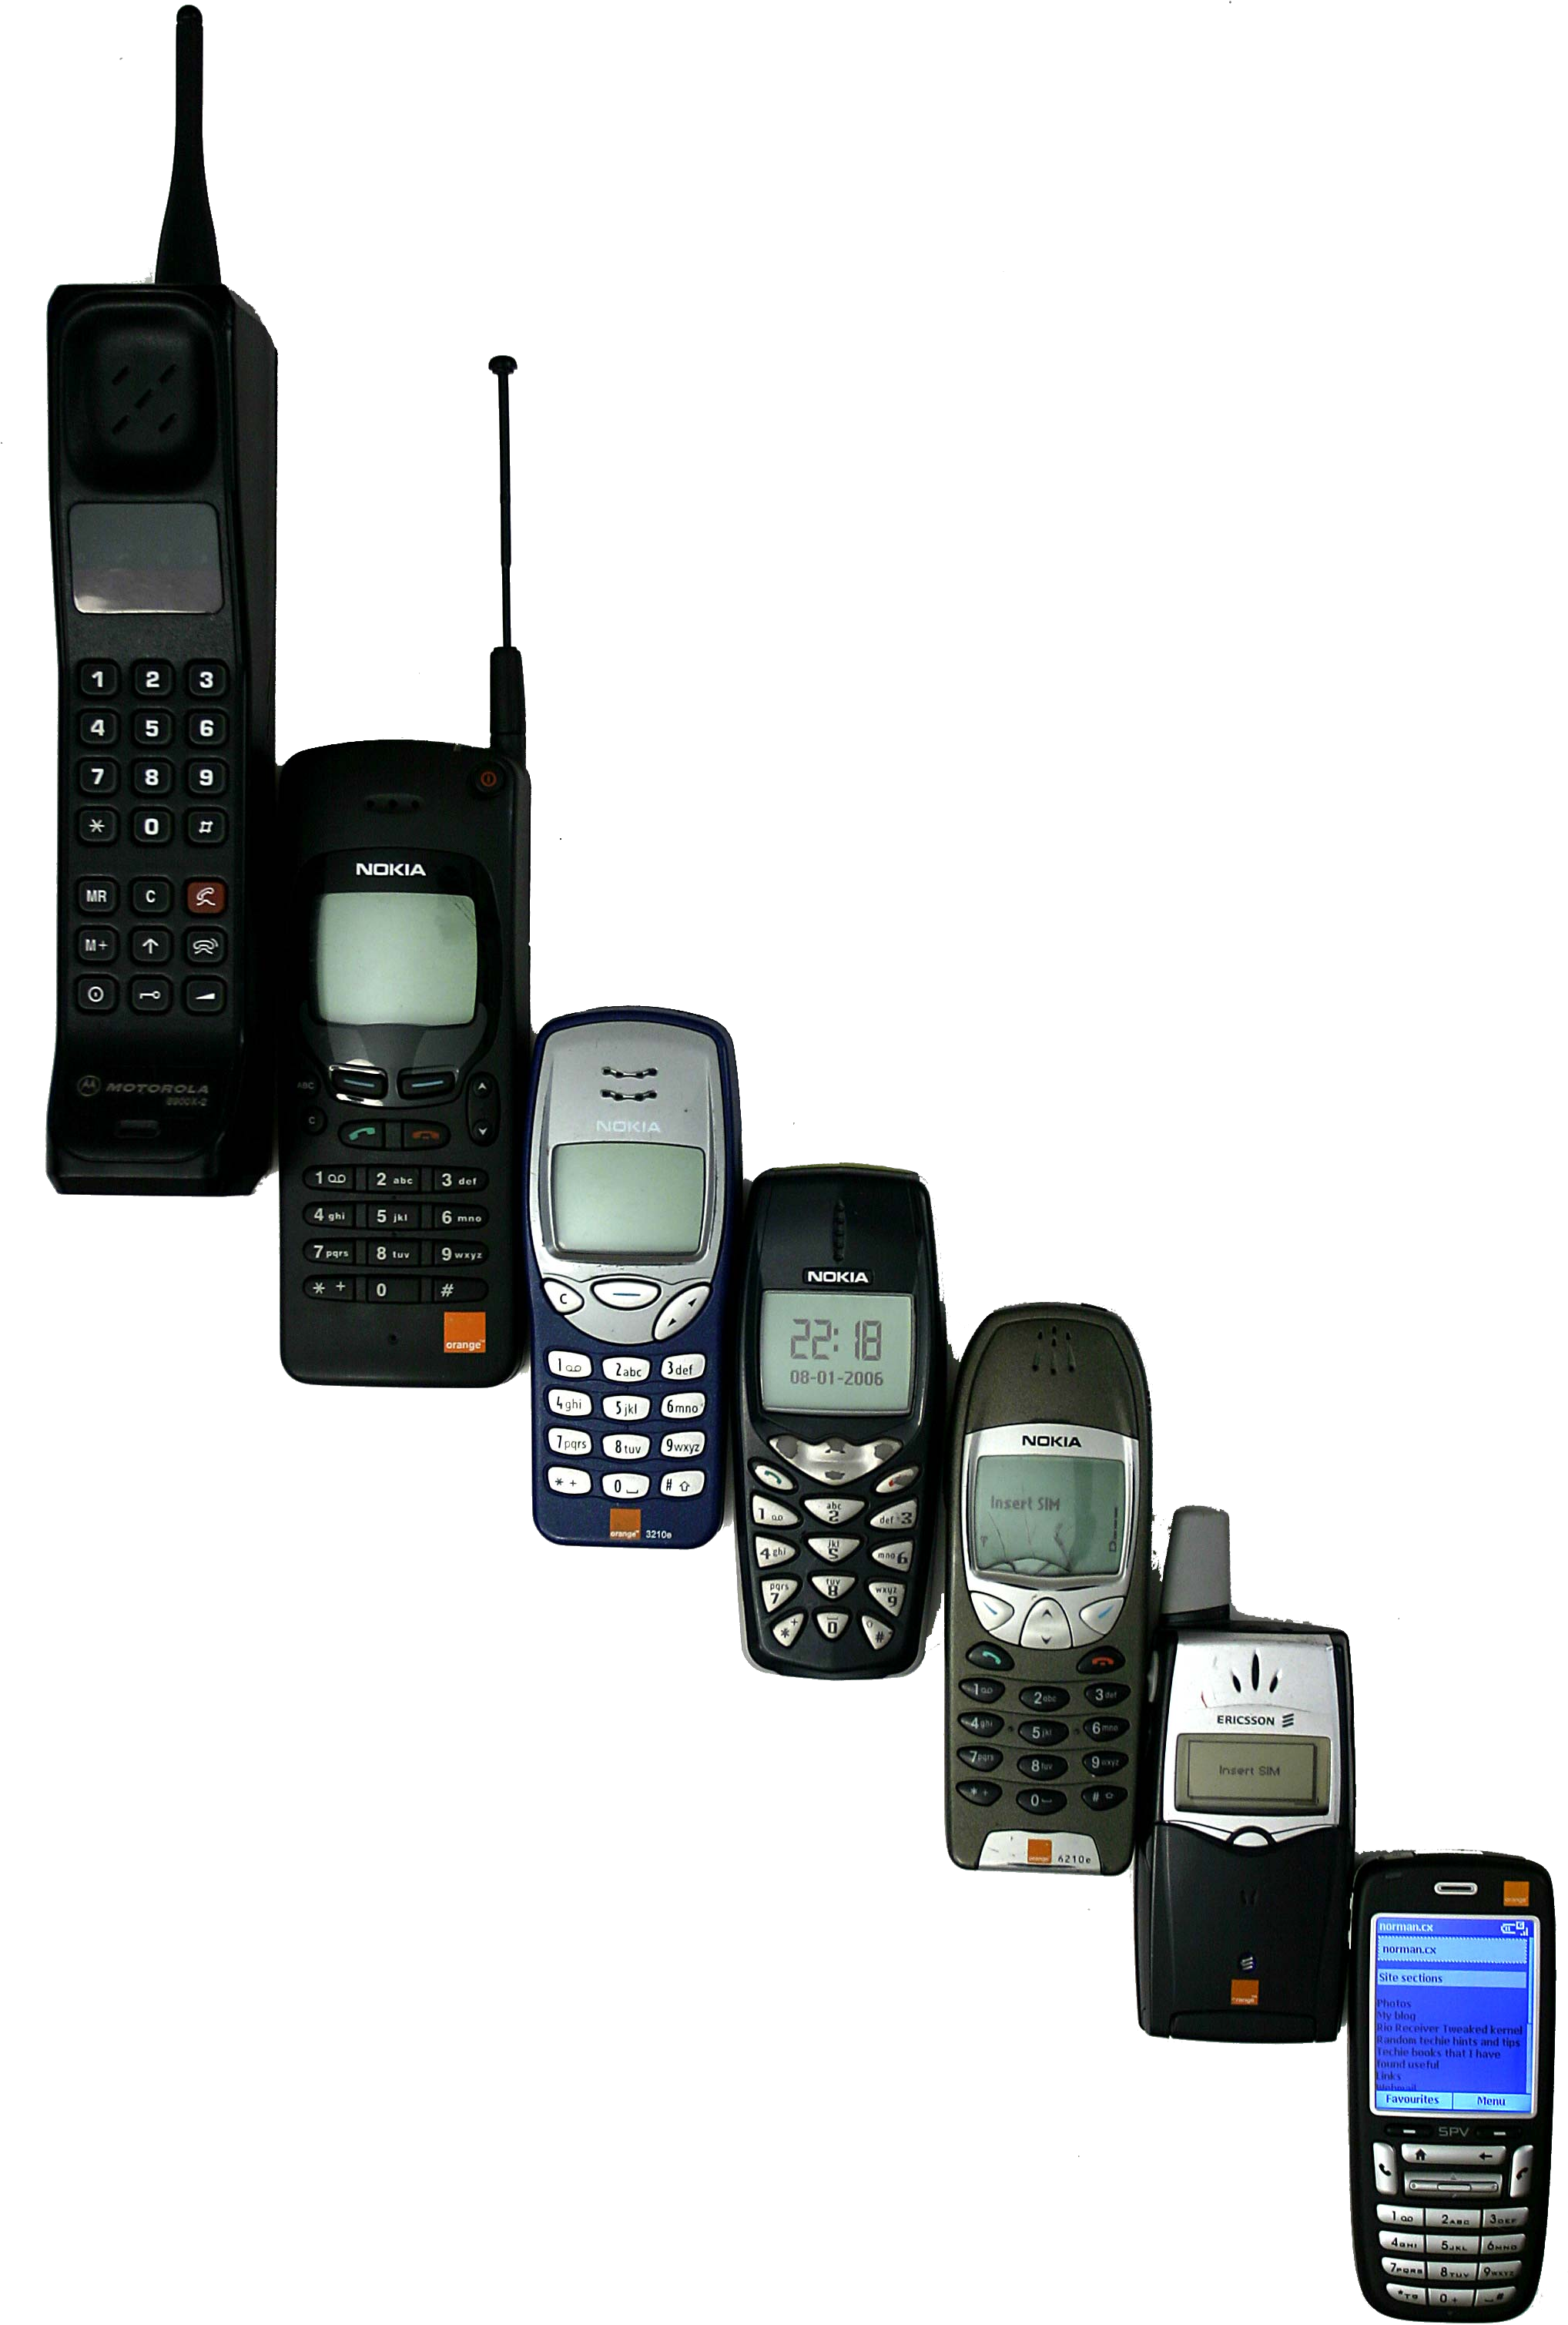 First telephone png. Download mobile phone history